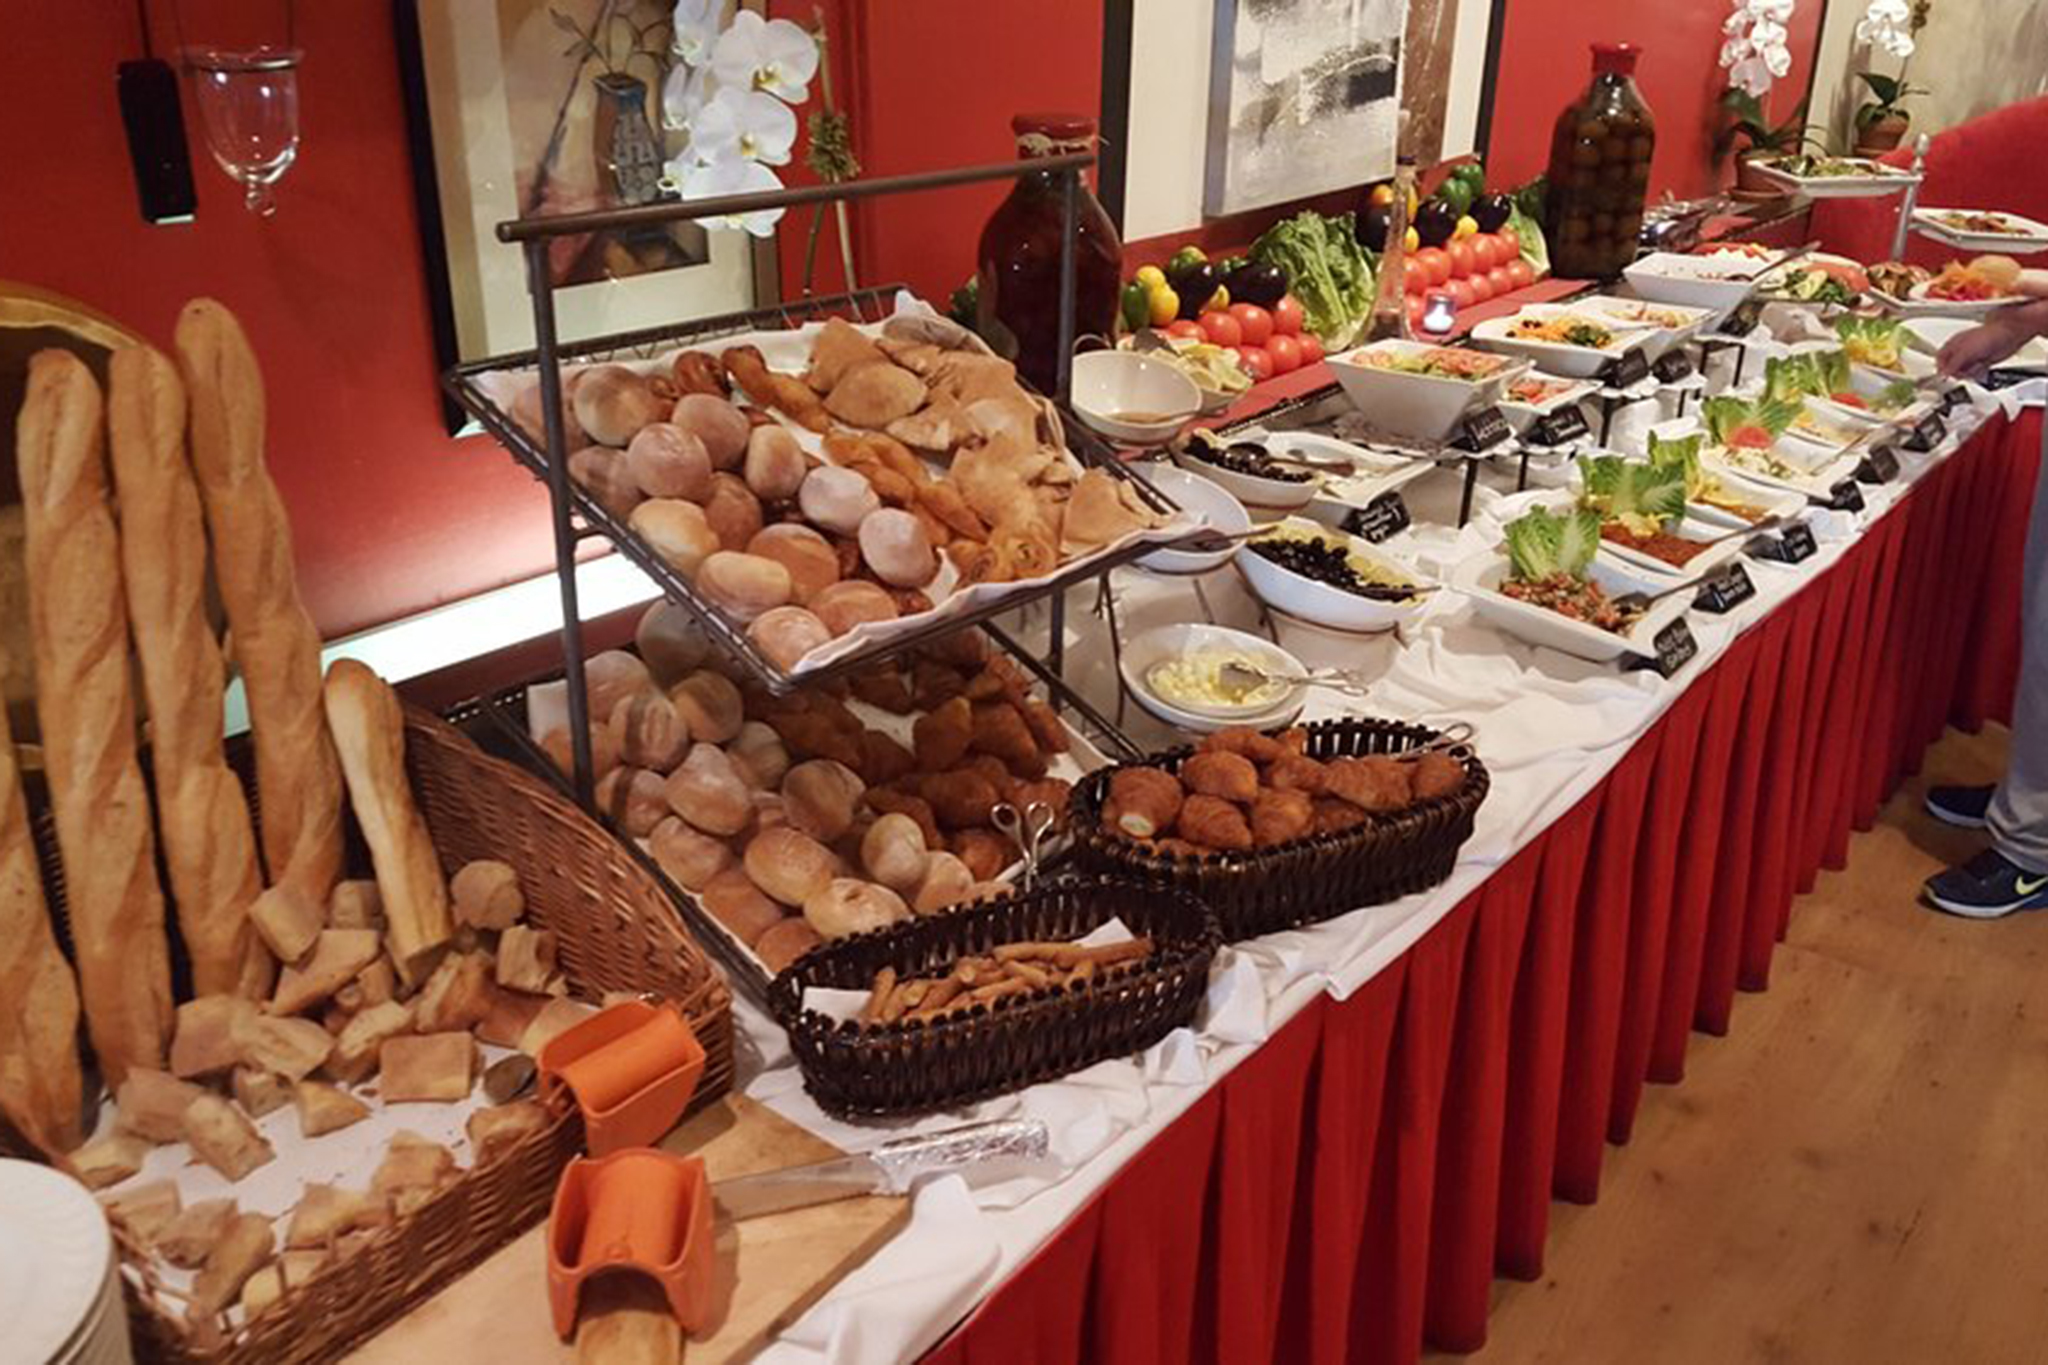 Brunch Buffet Best Buffet Restaurants In Nyc For All You Can Eat Meals